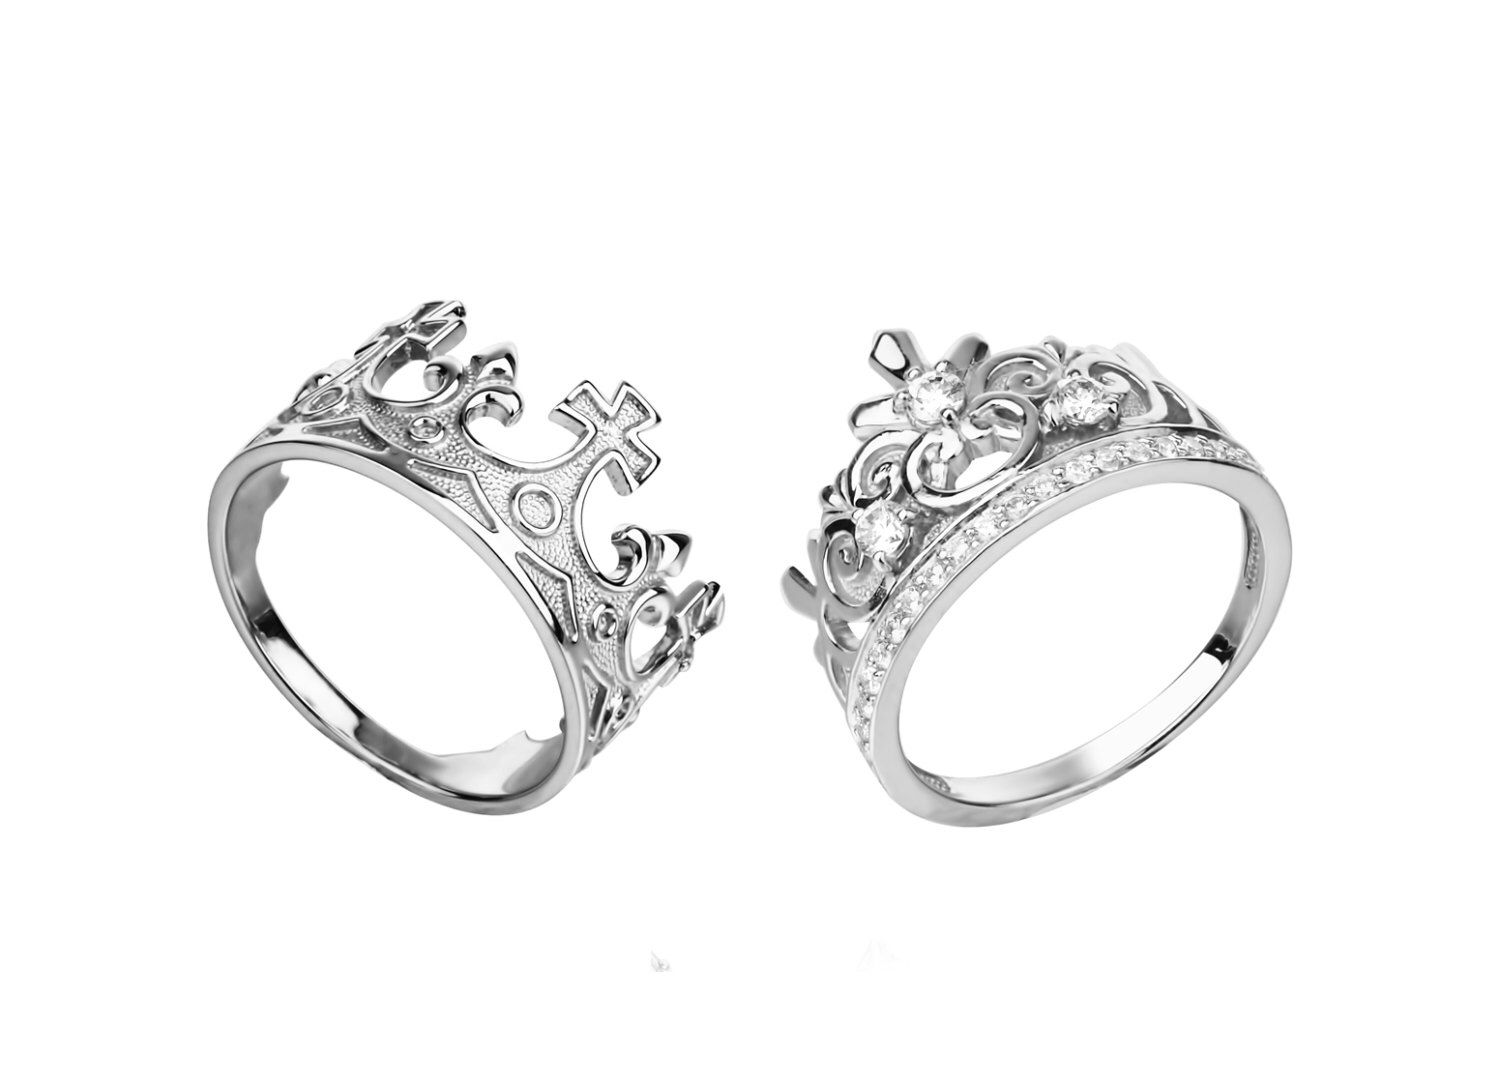 Matching boyfriend and girlfriend rings